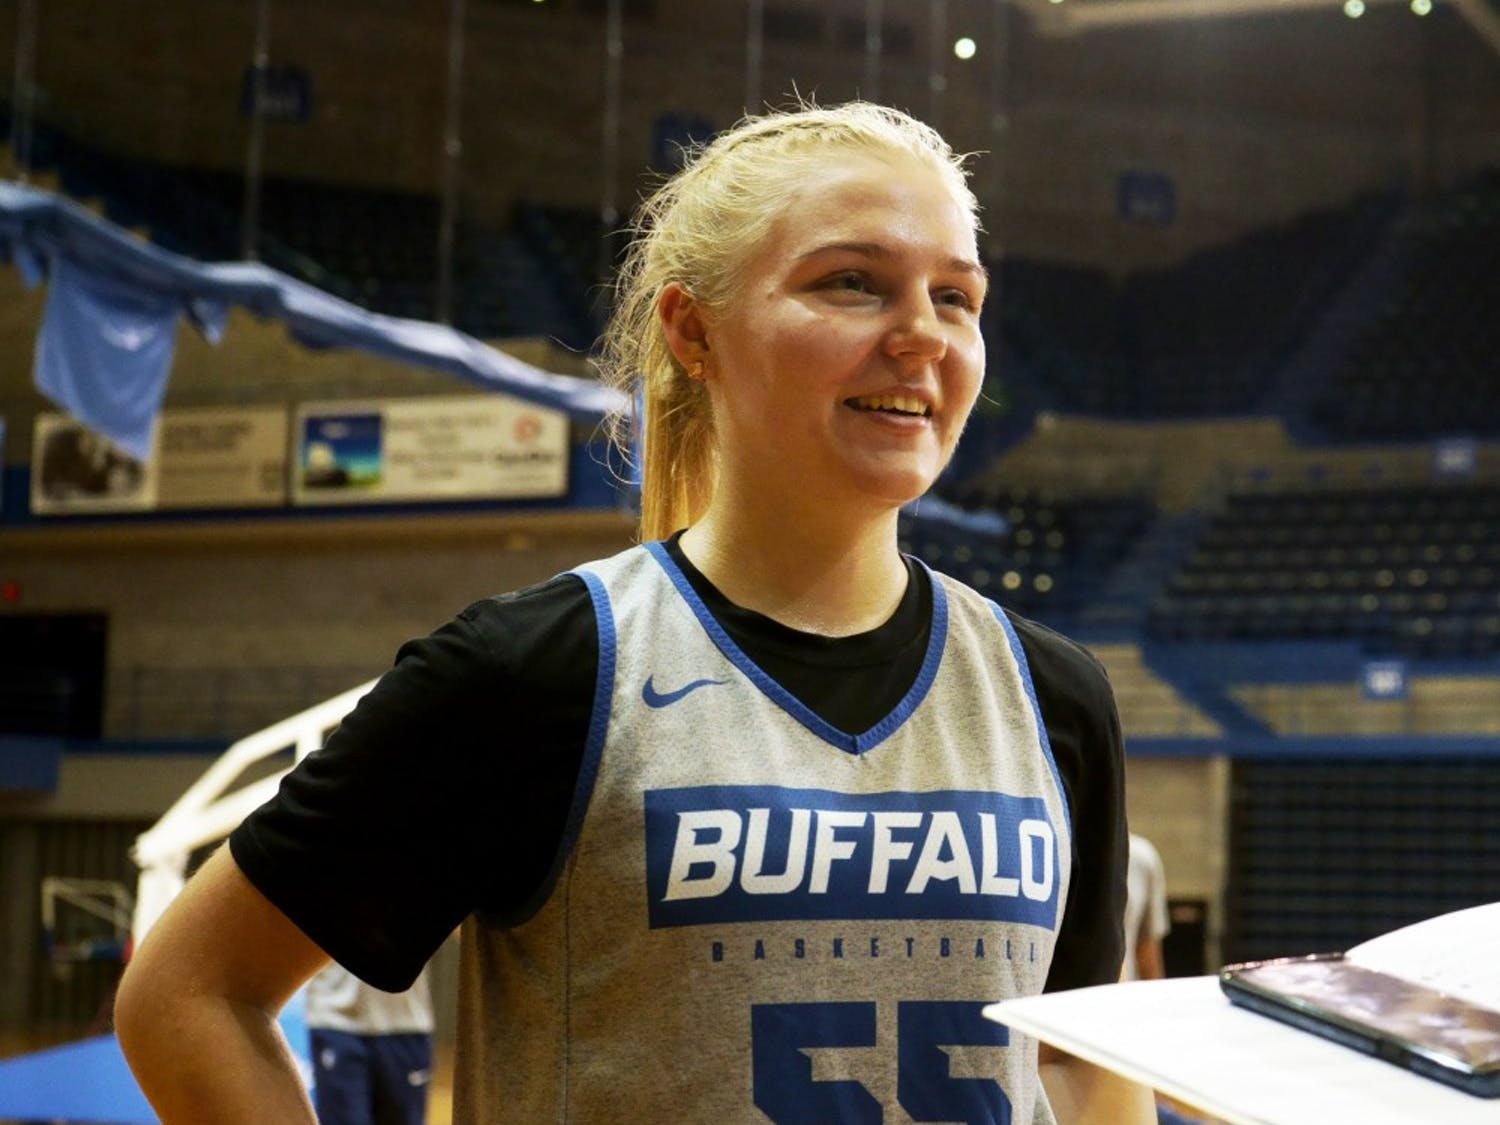 Jessika Schiffer at basketball practice.